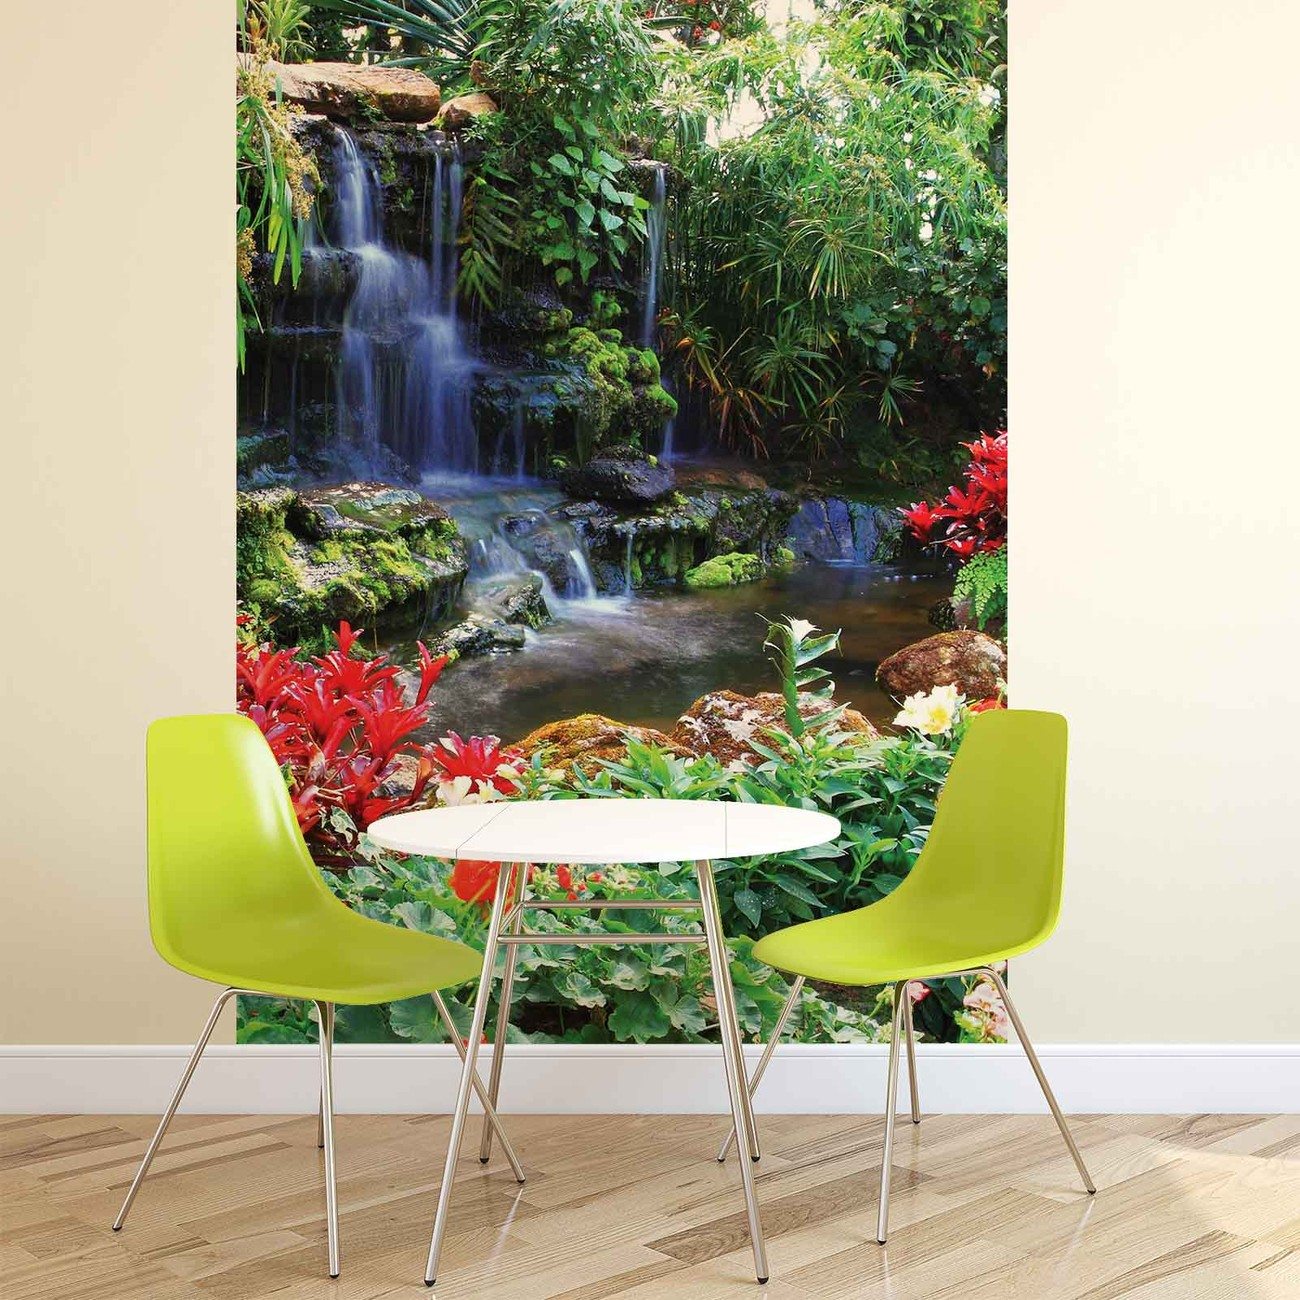 Waterfall forest nature wall paper mural buy at europosters for Mural nature